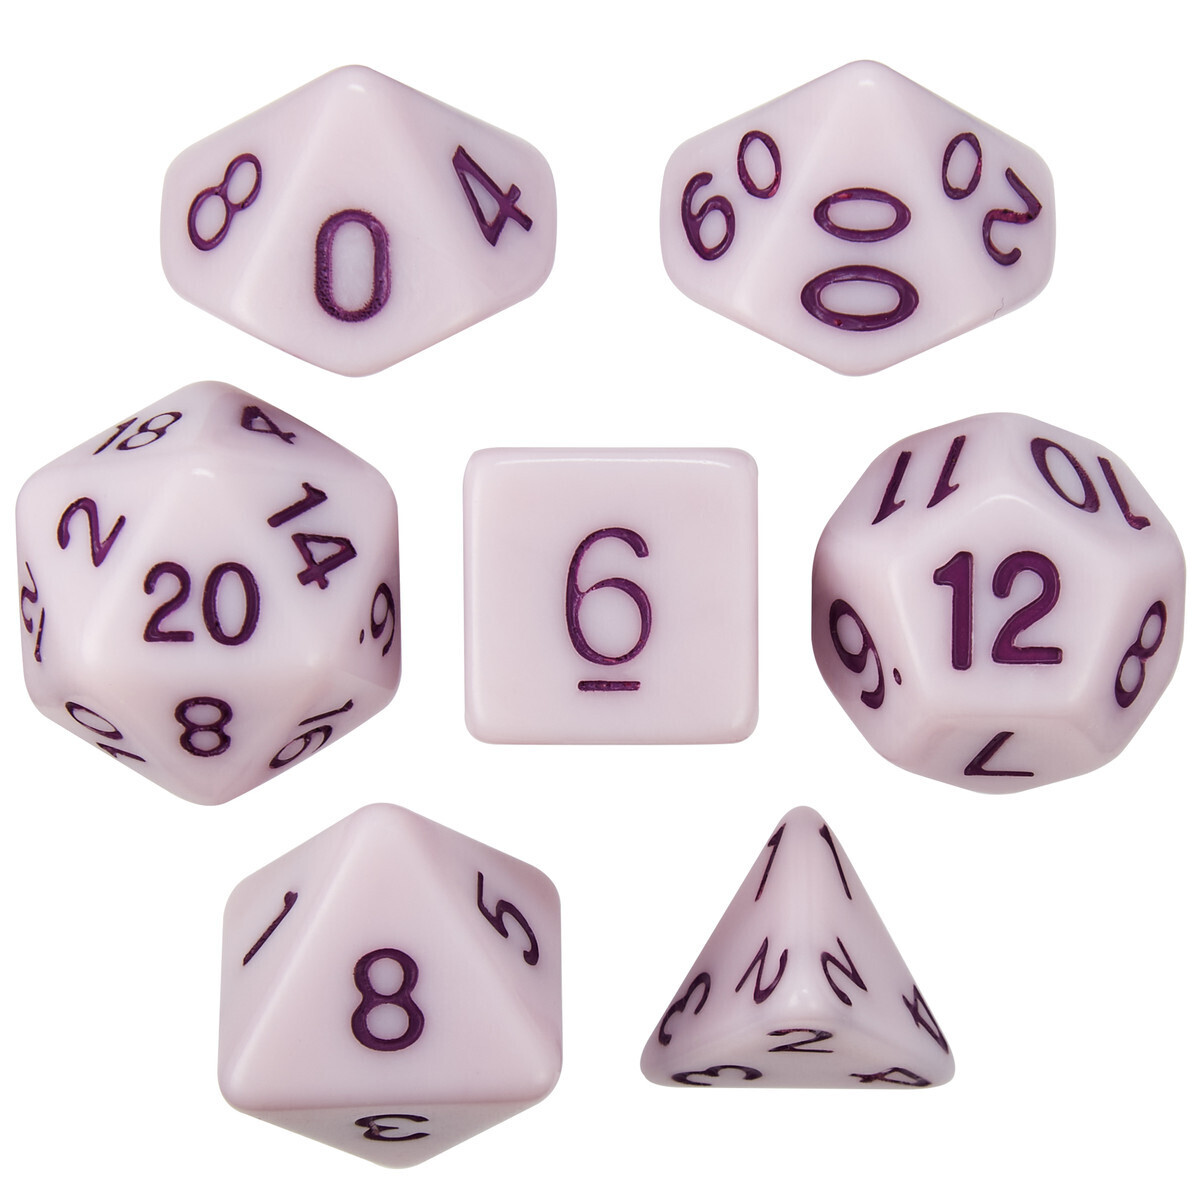 16mm 7 Die Polyhedral Set - Nightshade Extract - Solid Purple With Purple Paint - RPG Tabletop Games Roleplay Cards CCG Board Random Roll Decision